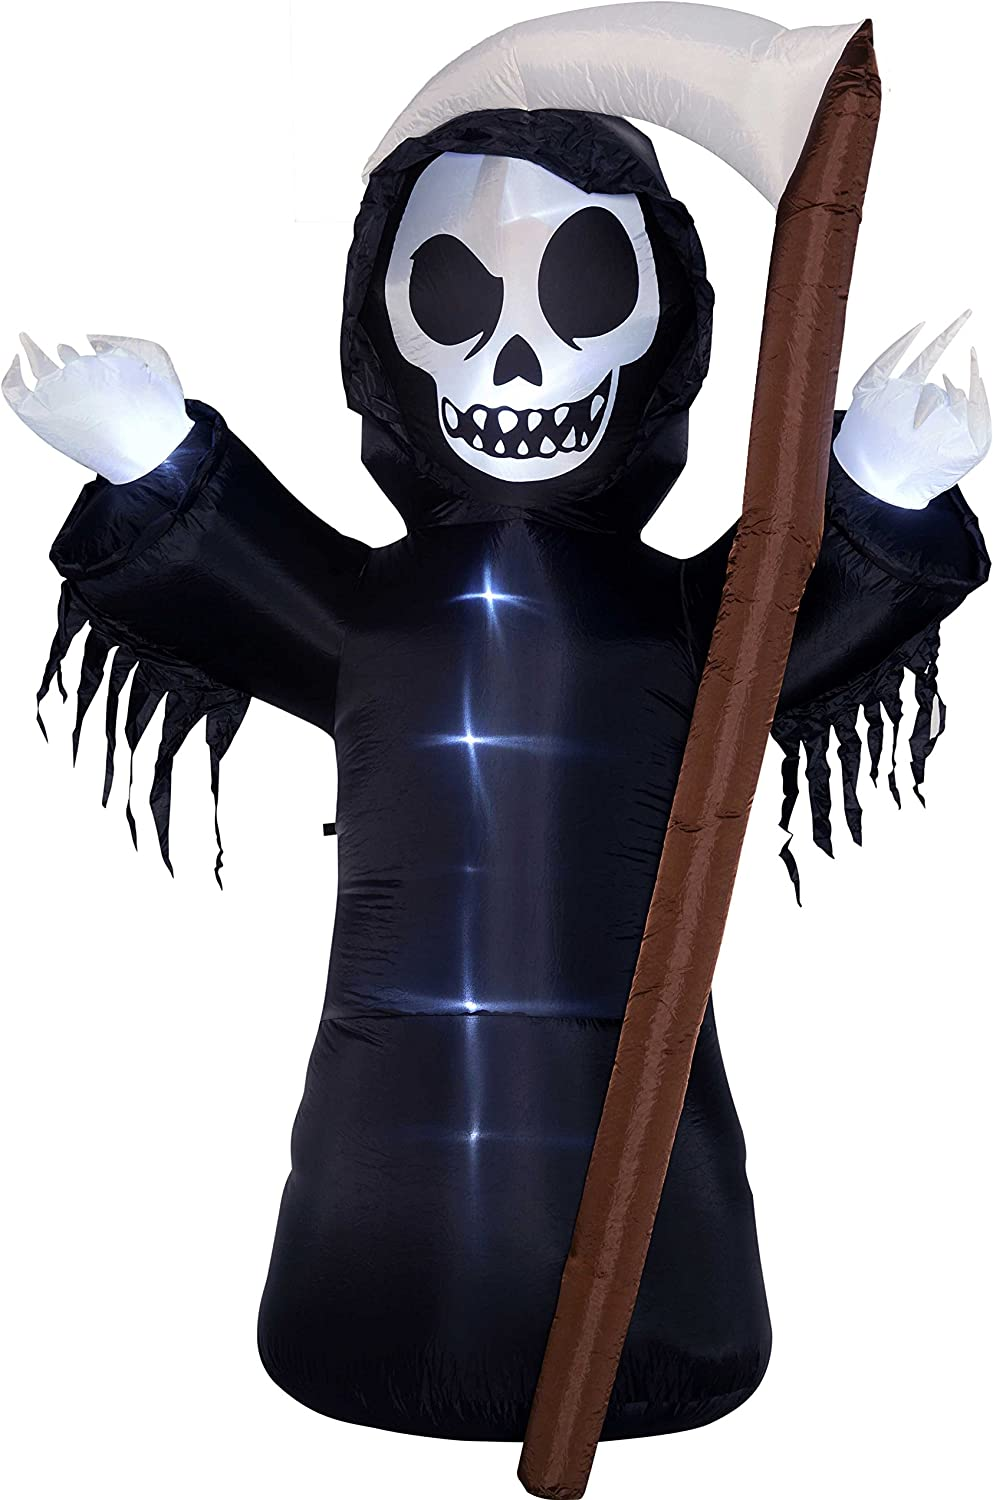 NEW INFLATABLE SCYTHE SPOOKY SCARY GRIM REAPER HALLOWEEN TOY PROP 100CM HB